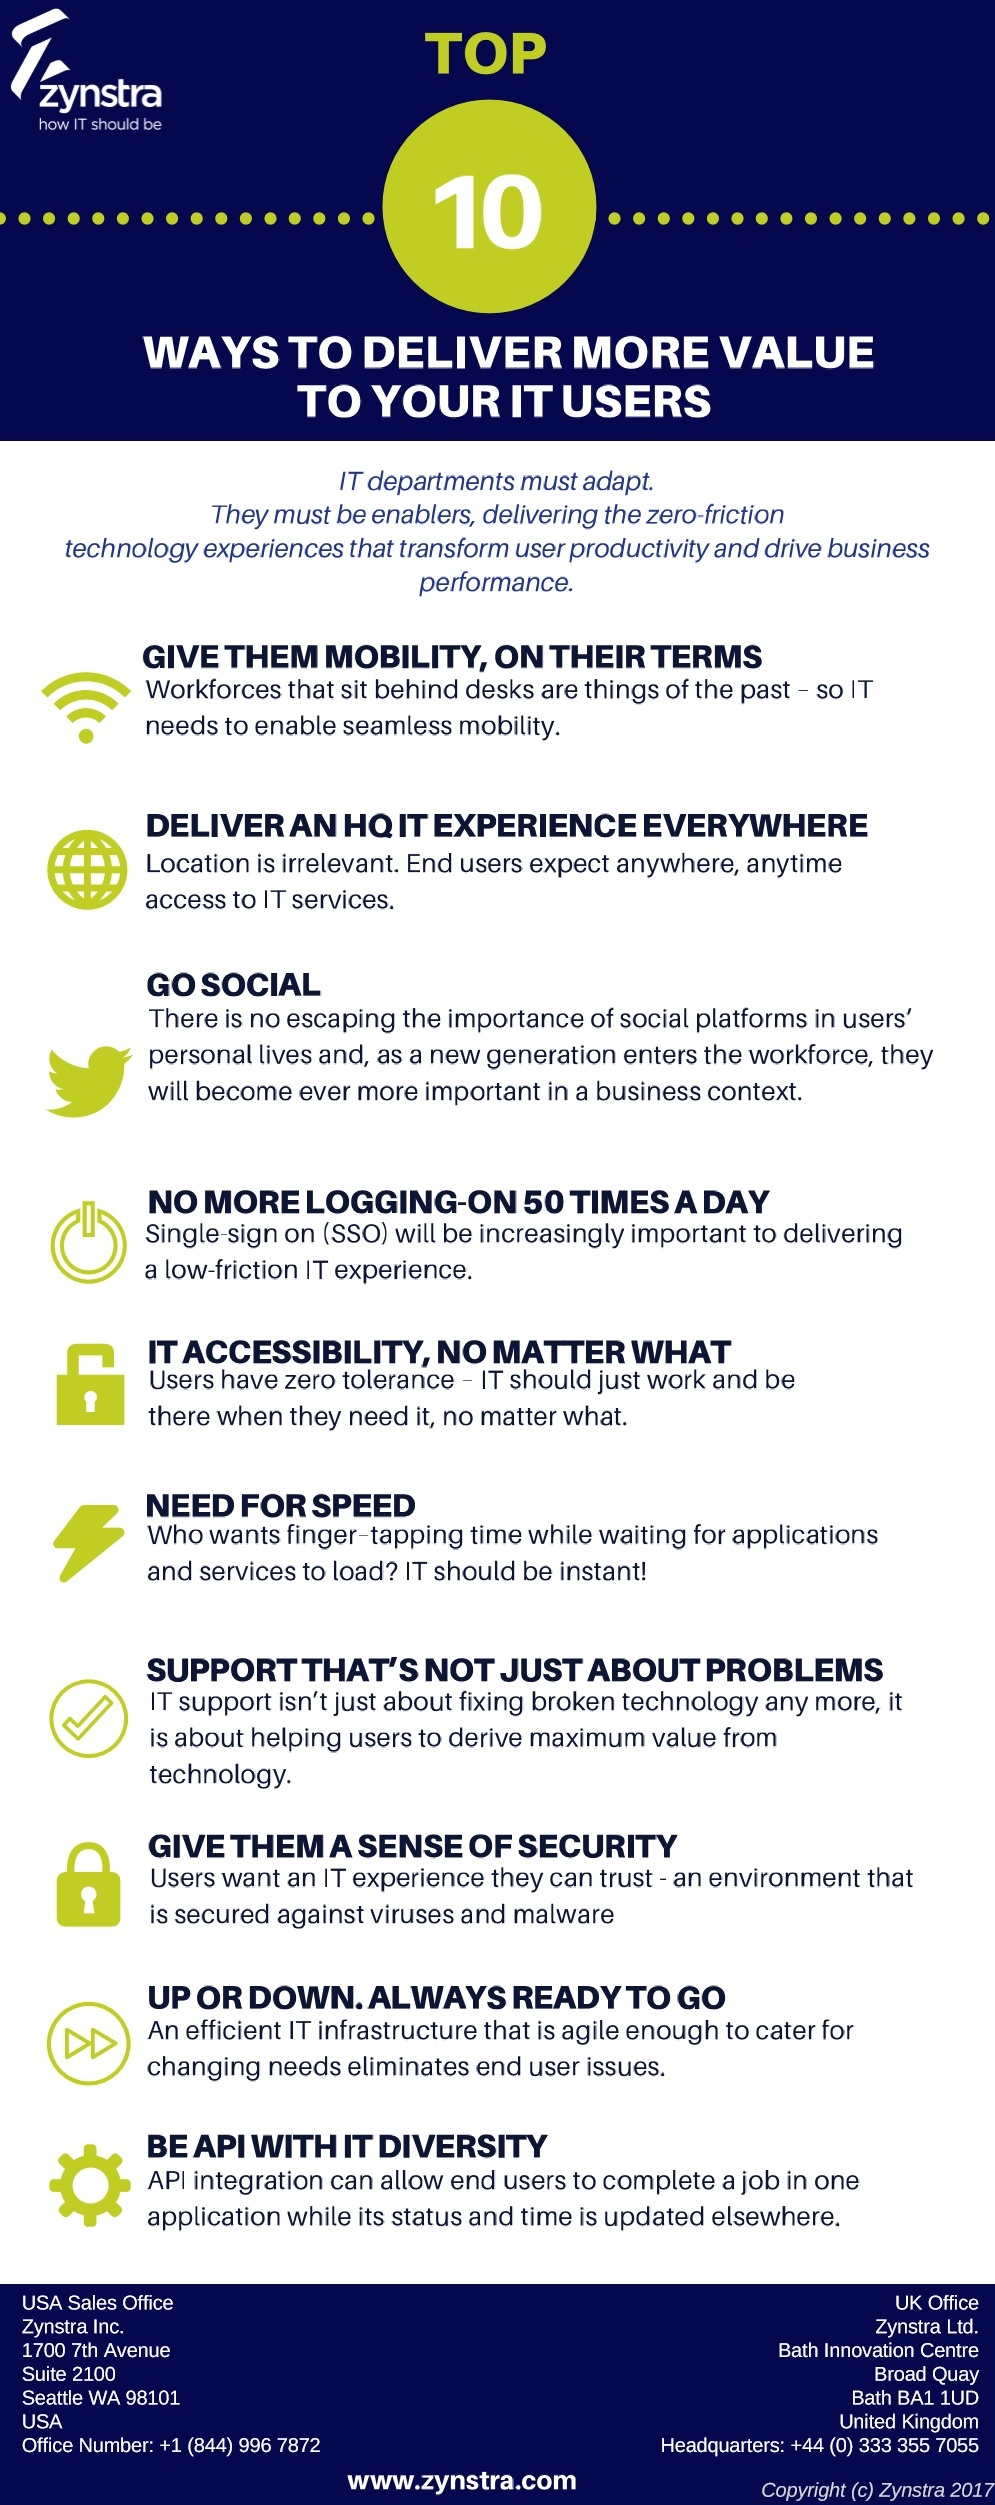 Top 10 Ways to Deliver More Value to Your IT Users.jpg